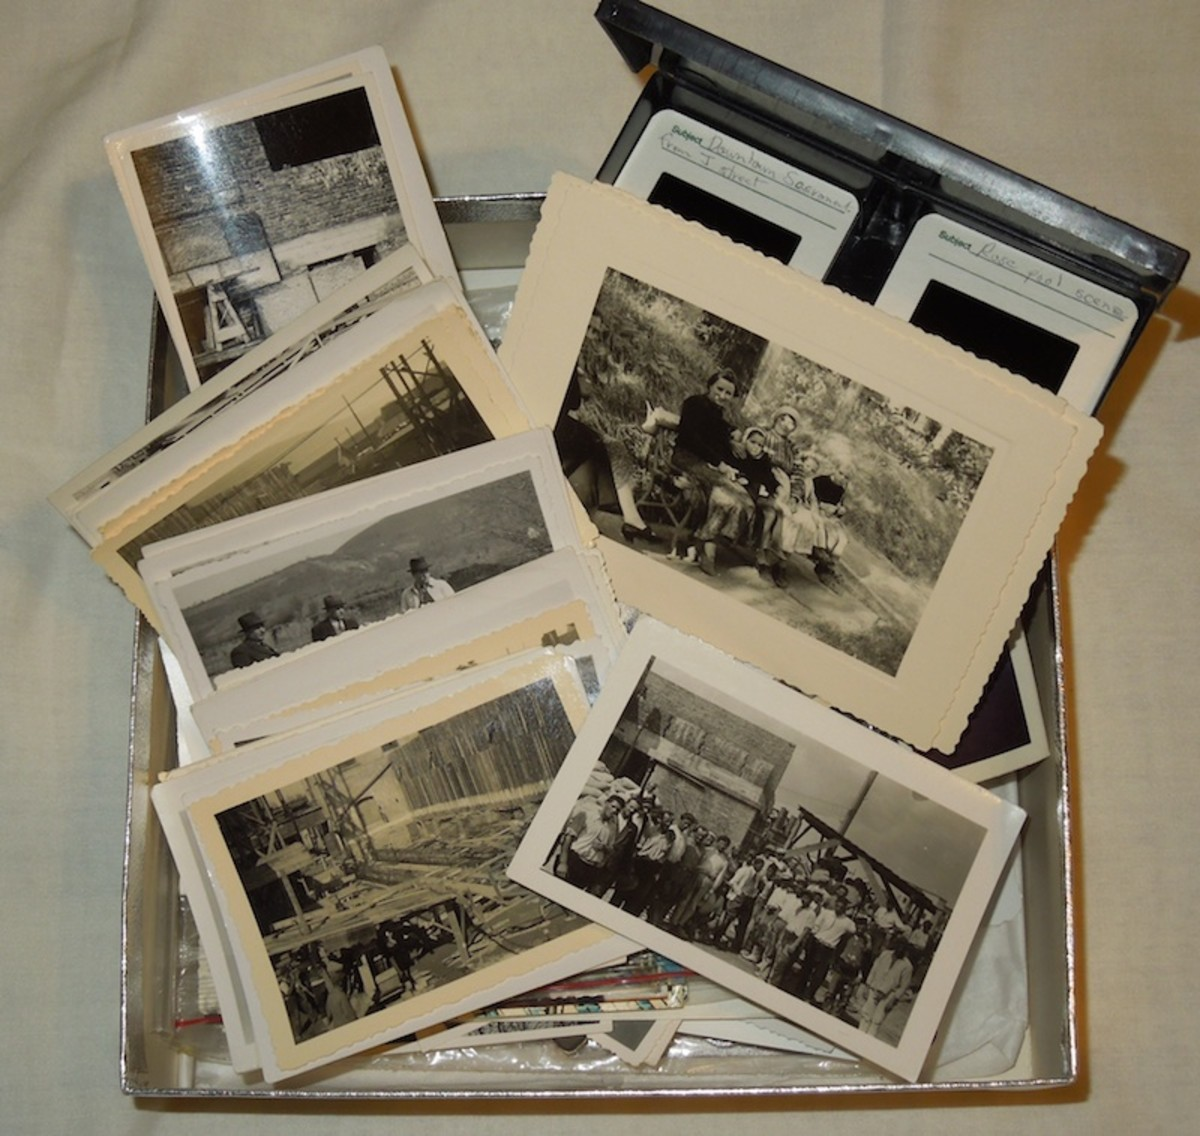 Our boxes of photos live long after we are gone, leaving our descendants to ponder over them or throw them out.